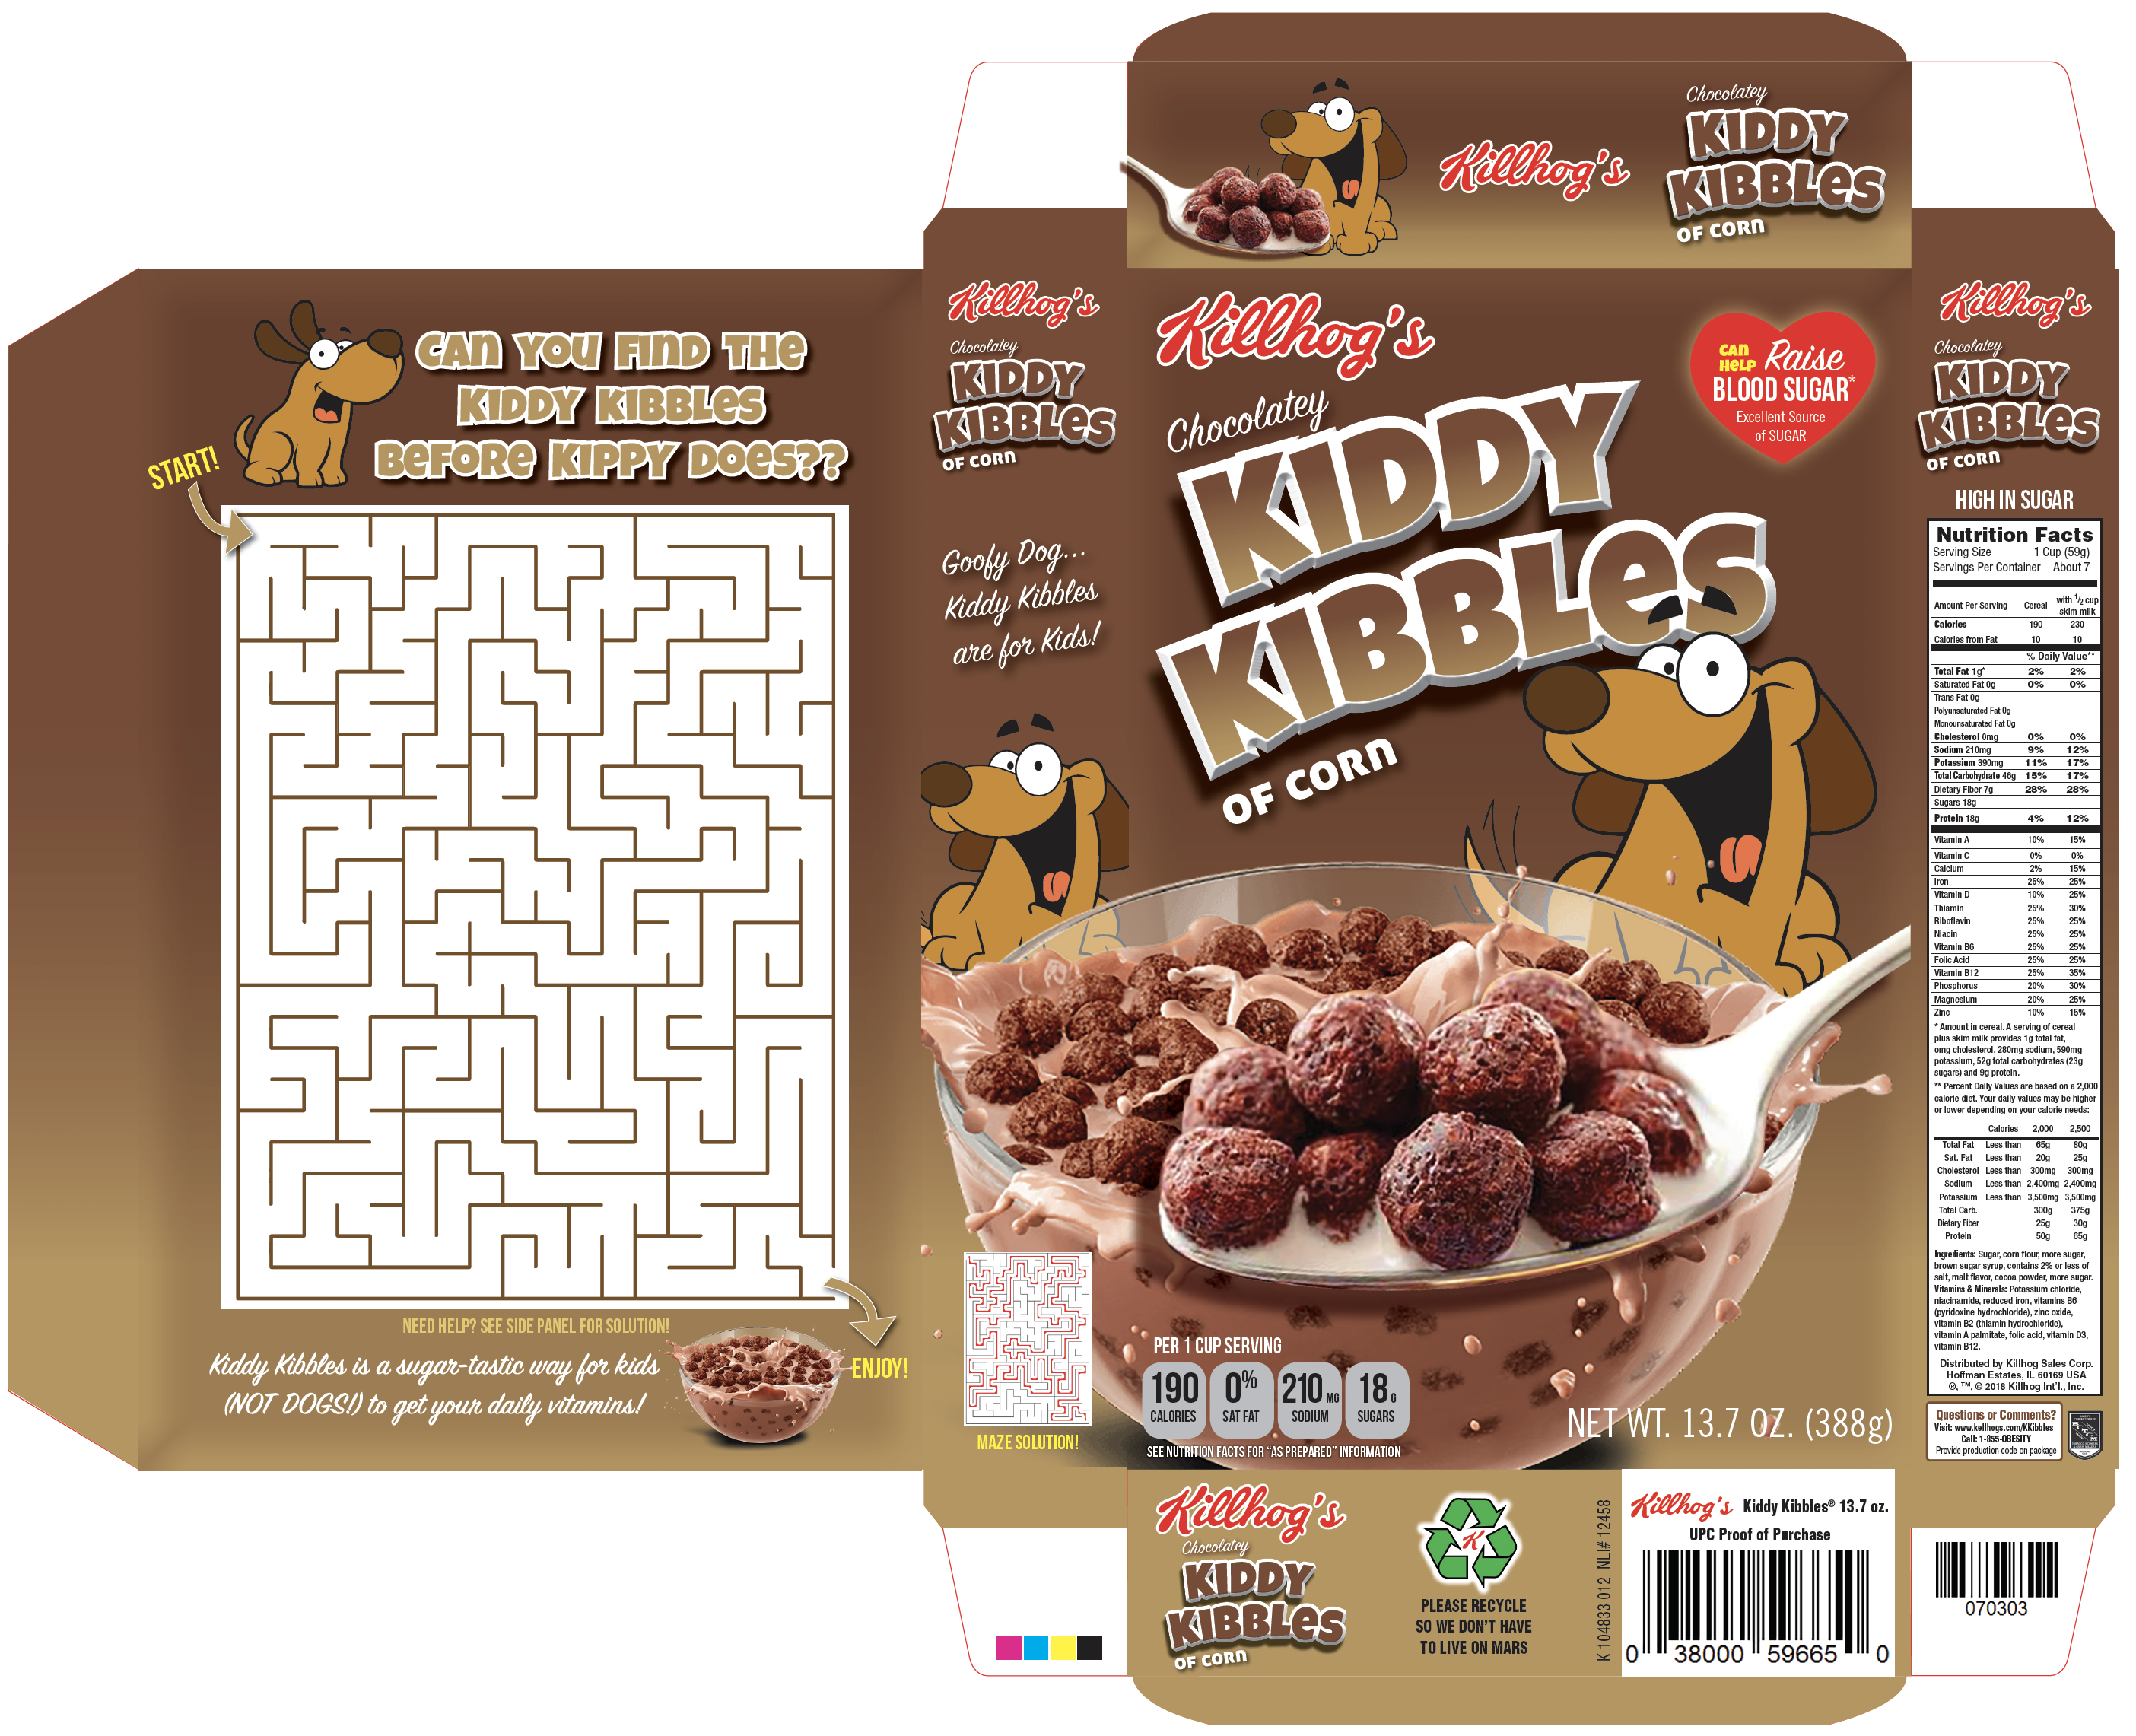 Kiddy Kibbles Box